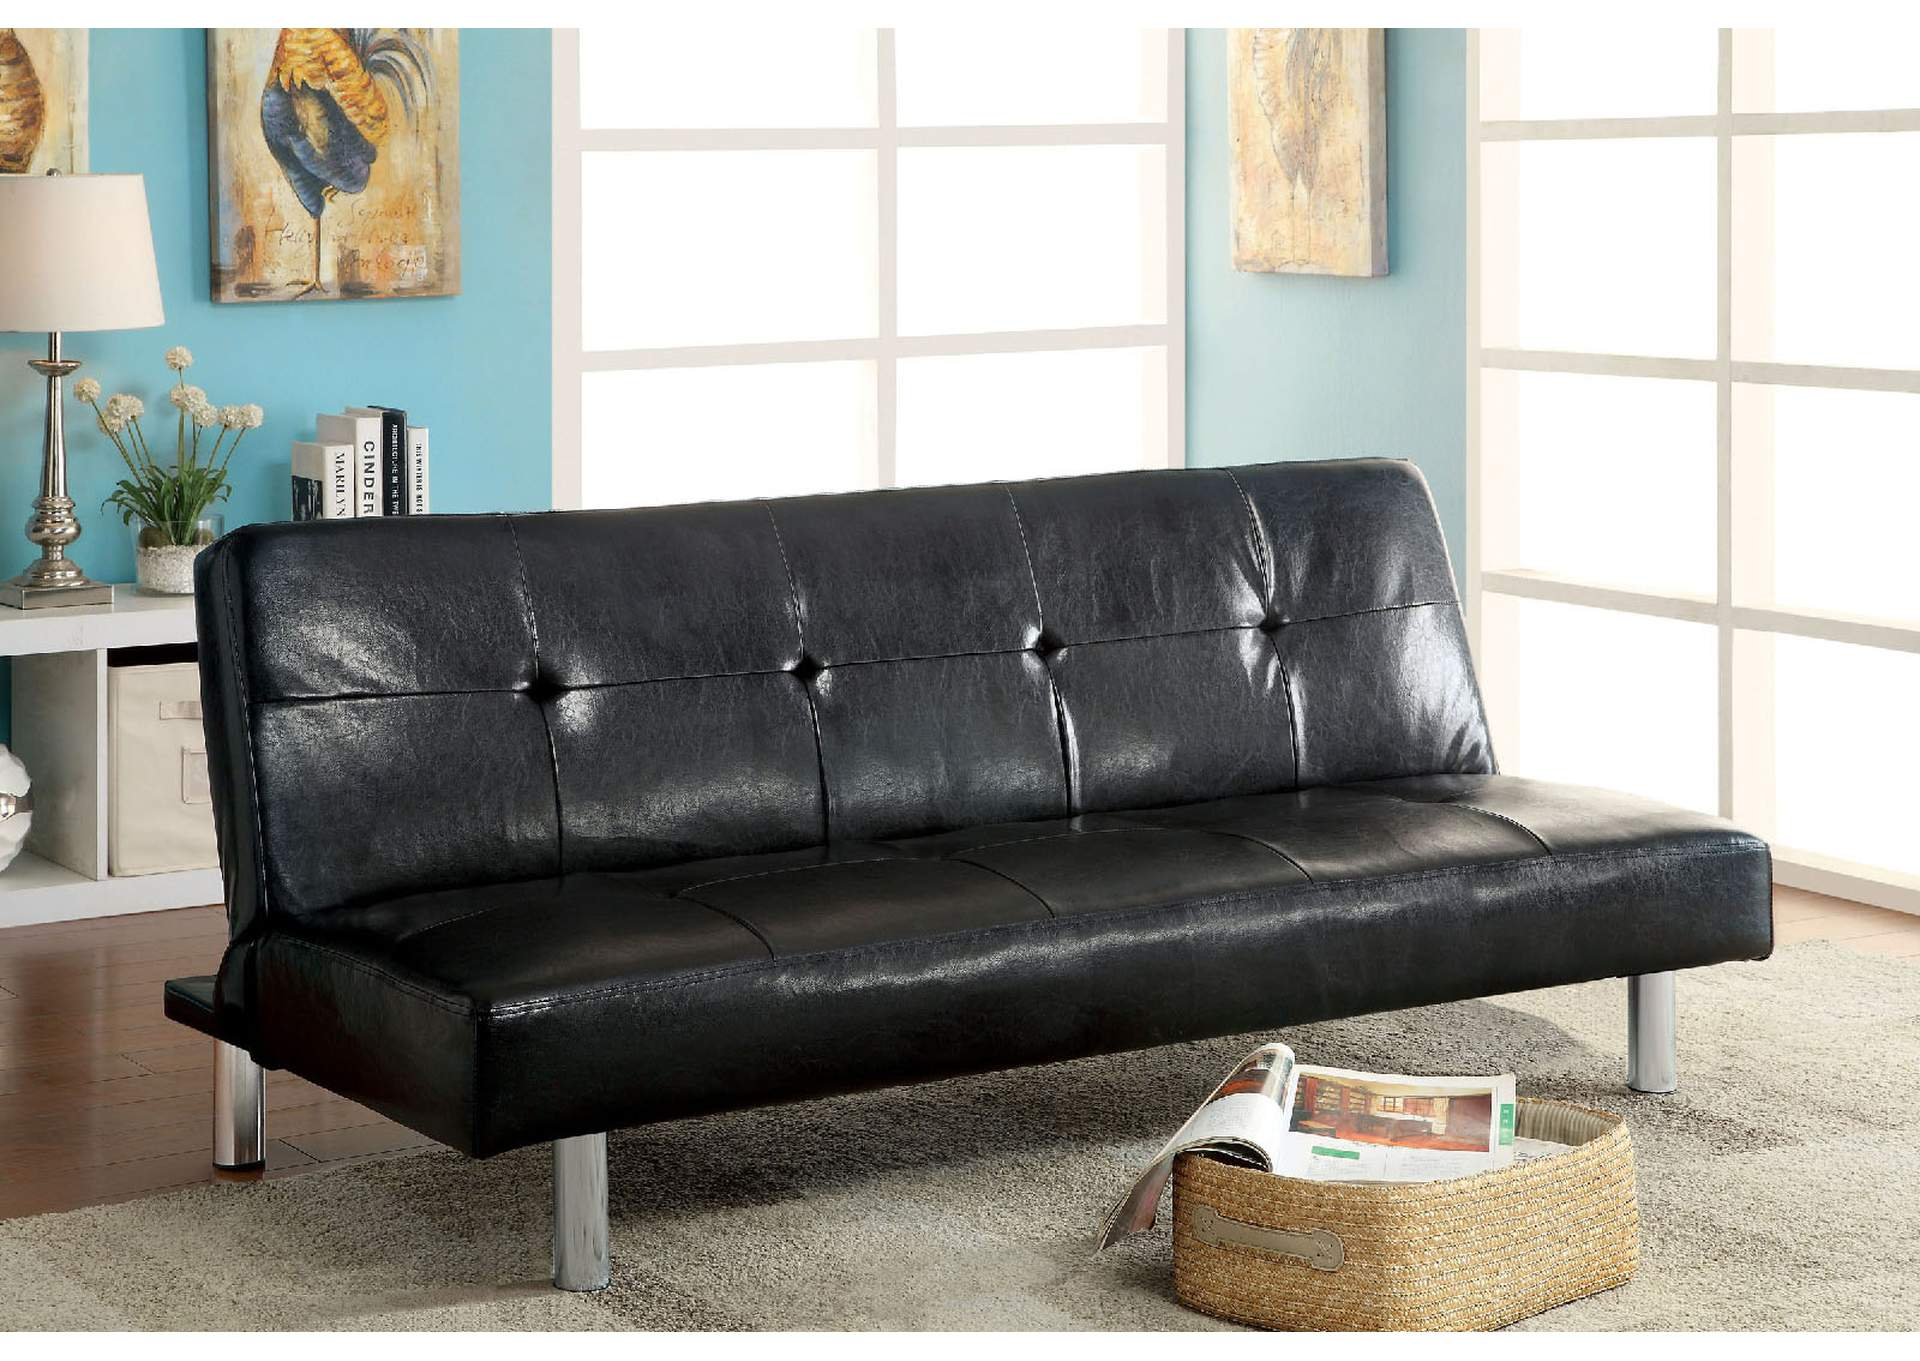 Eddi Black Leatherette Futon Sofa,Furniture of America